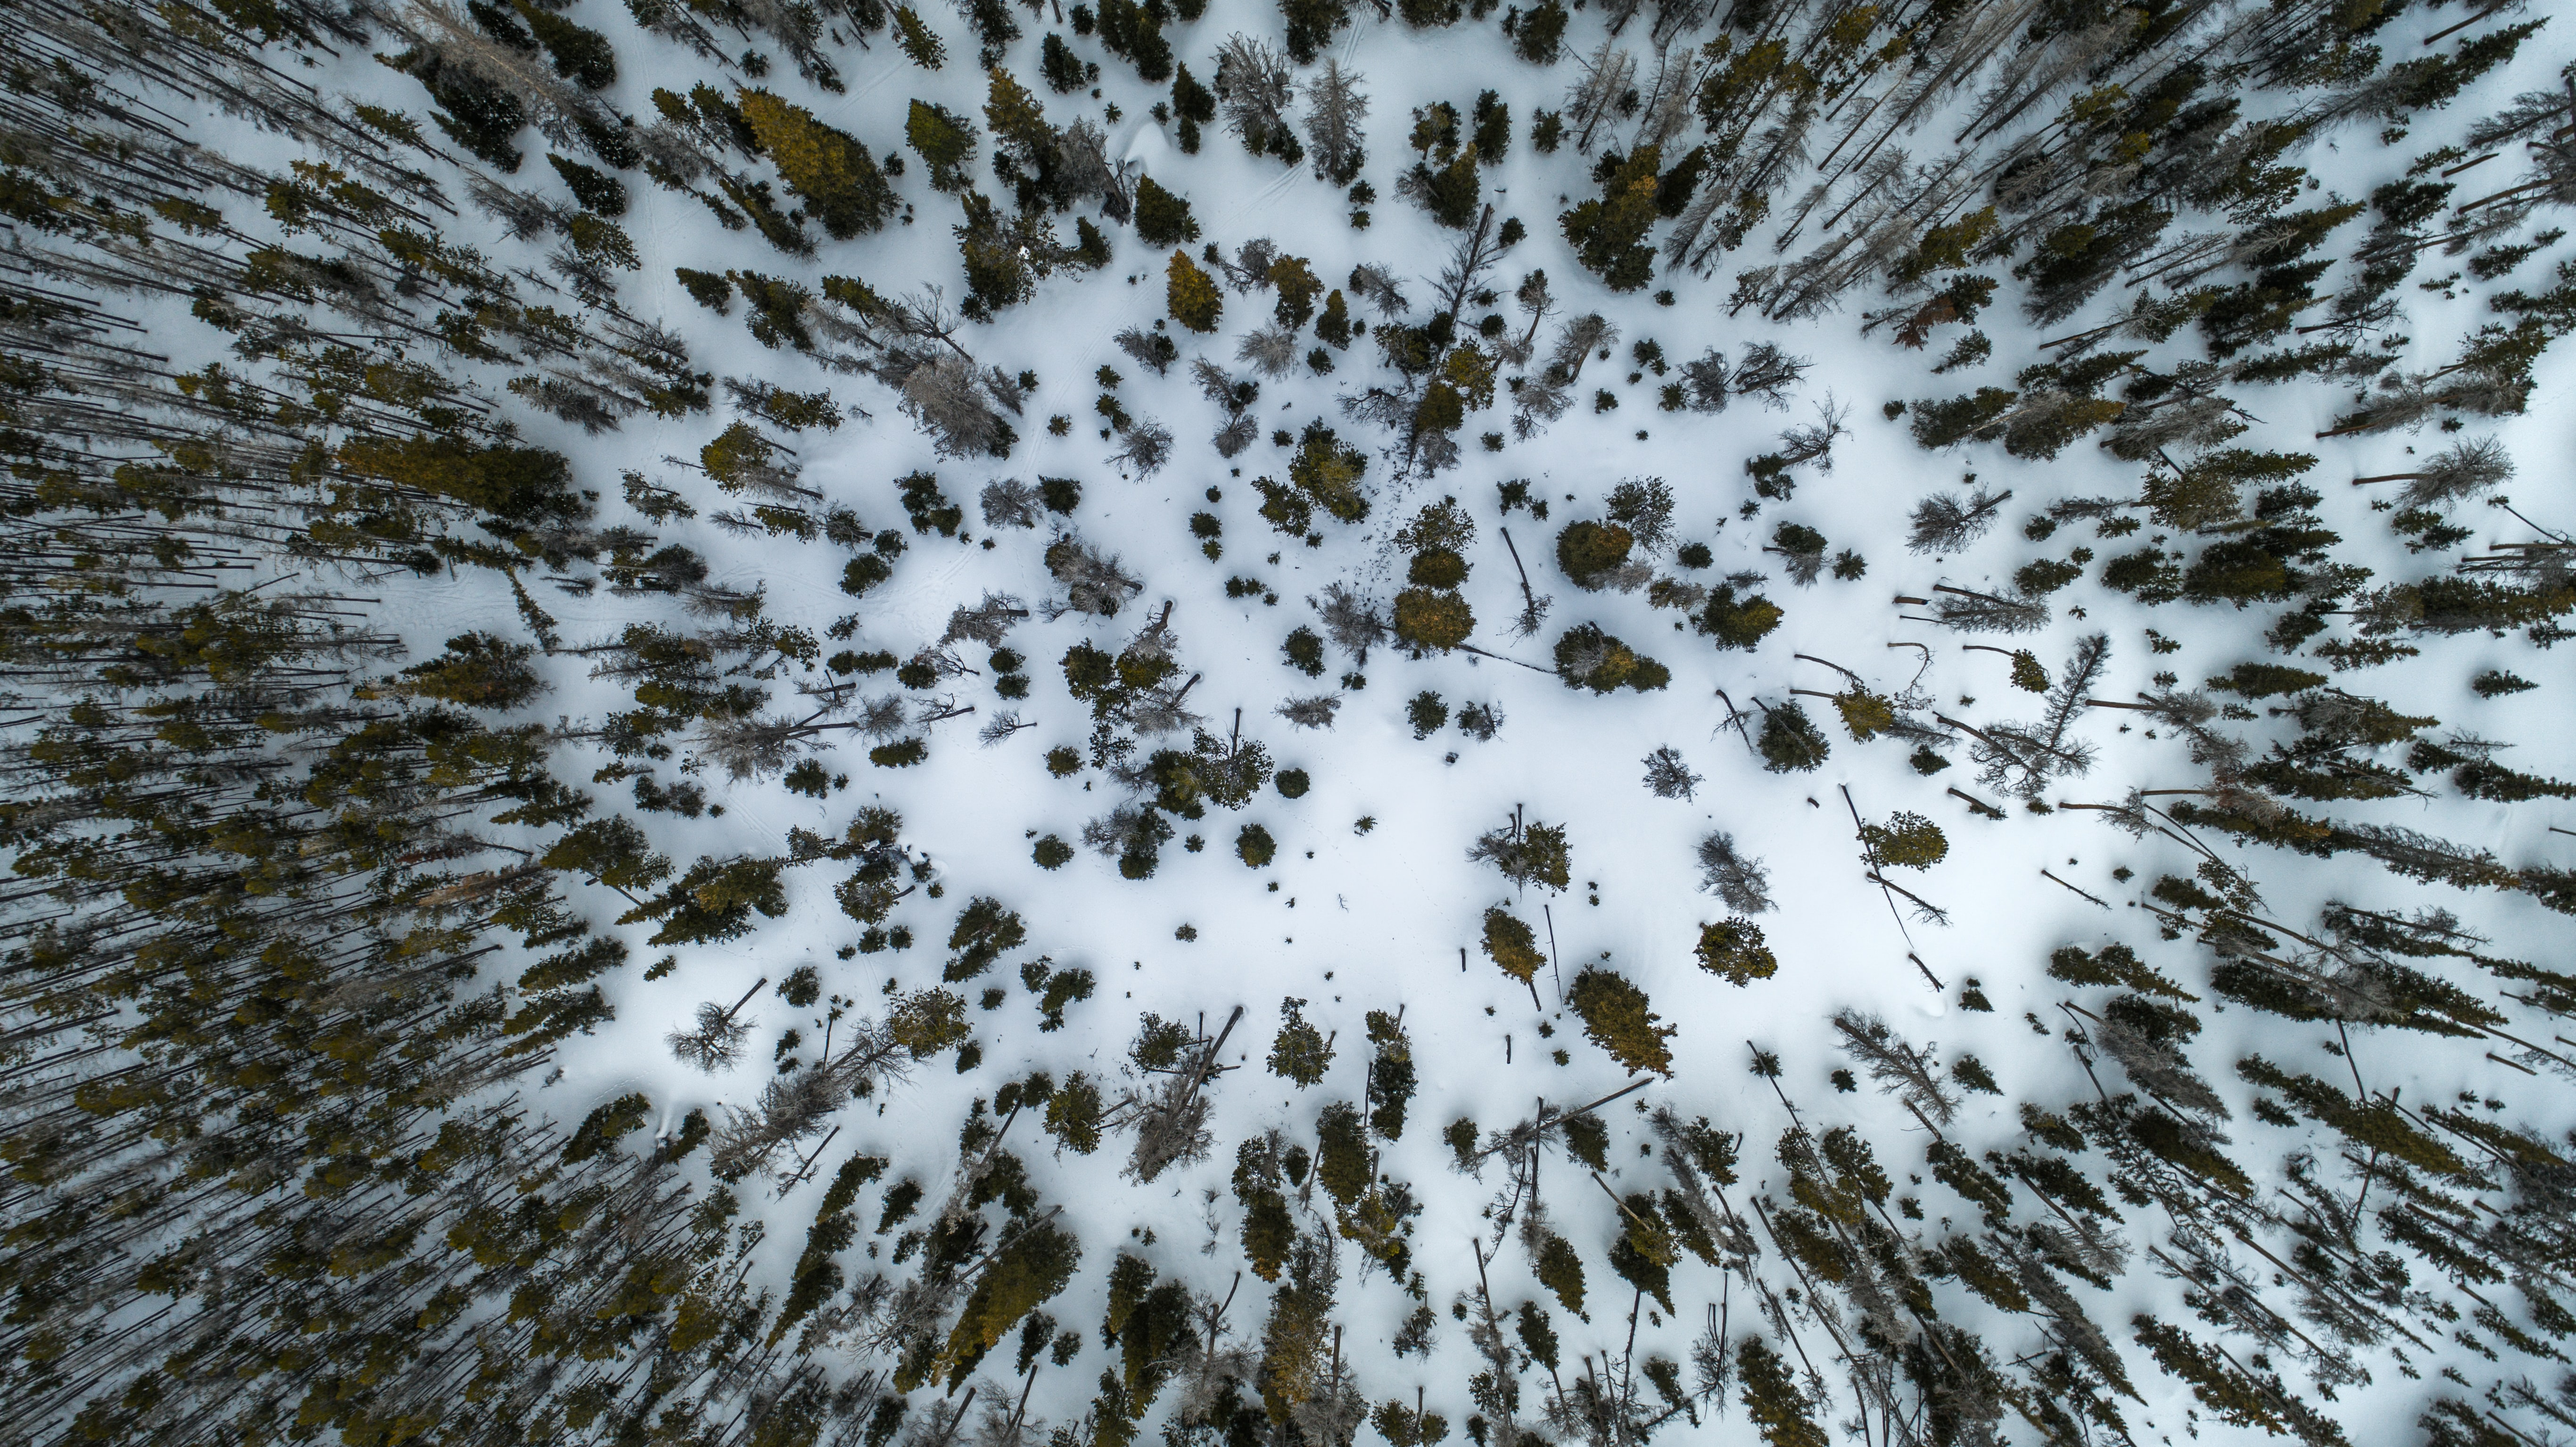 aerial view photography of pine trees on snow field